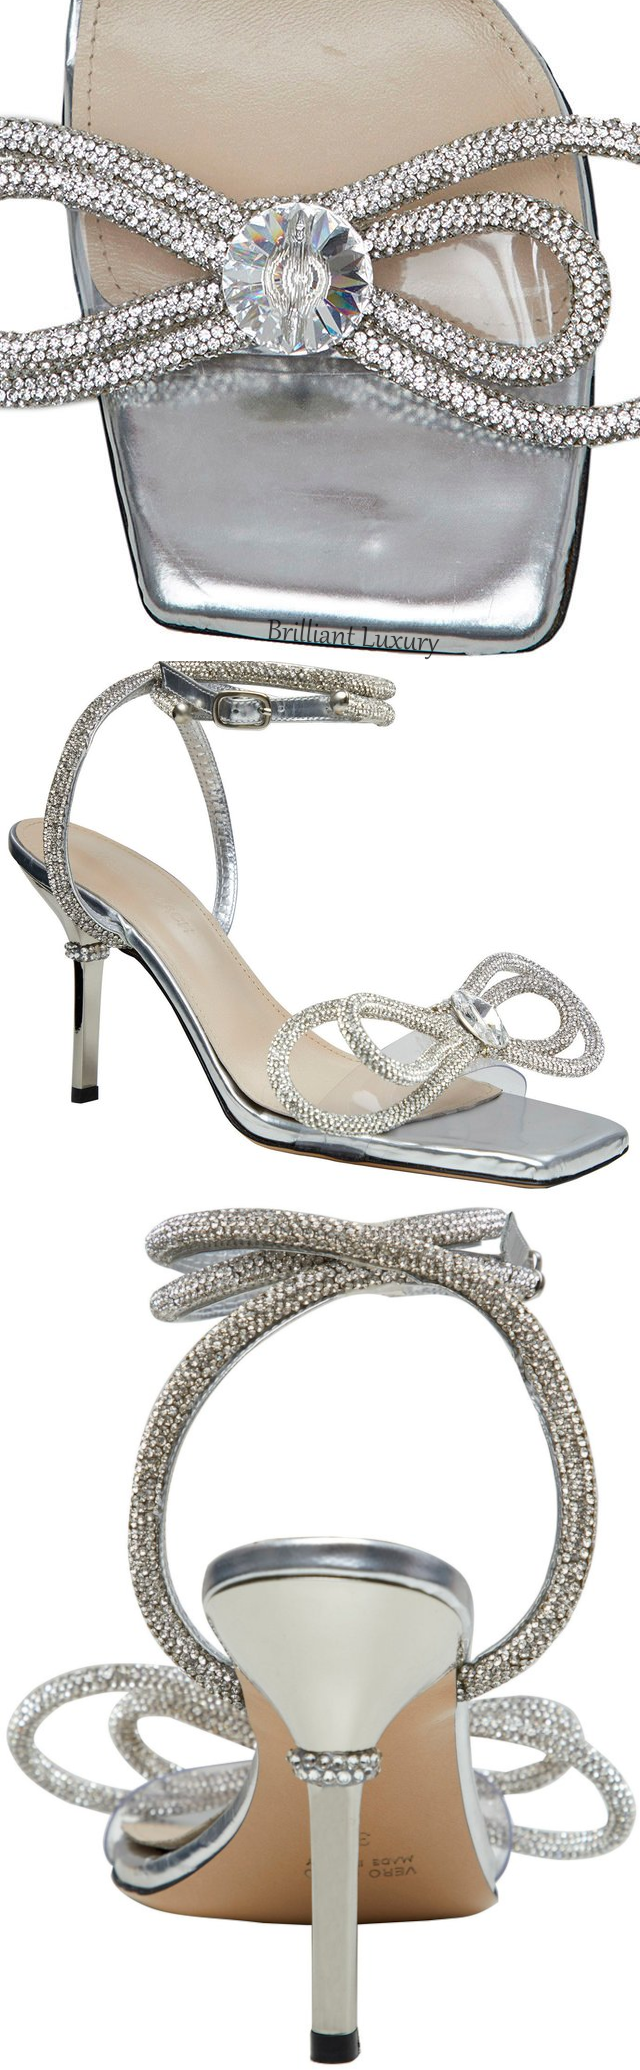 Mach & Mach silver crystal bow-embellished sandal #brilliantluxury